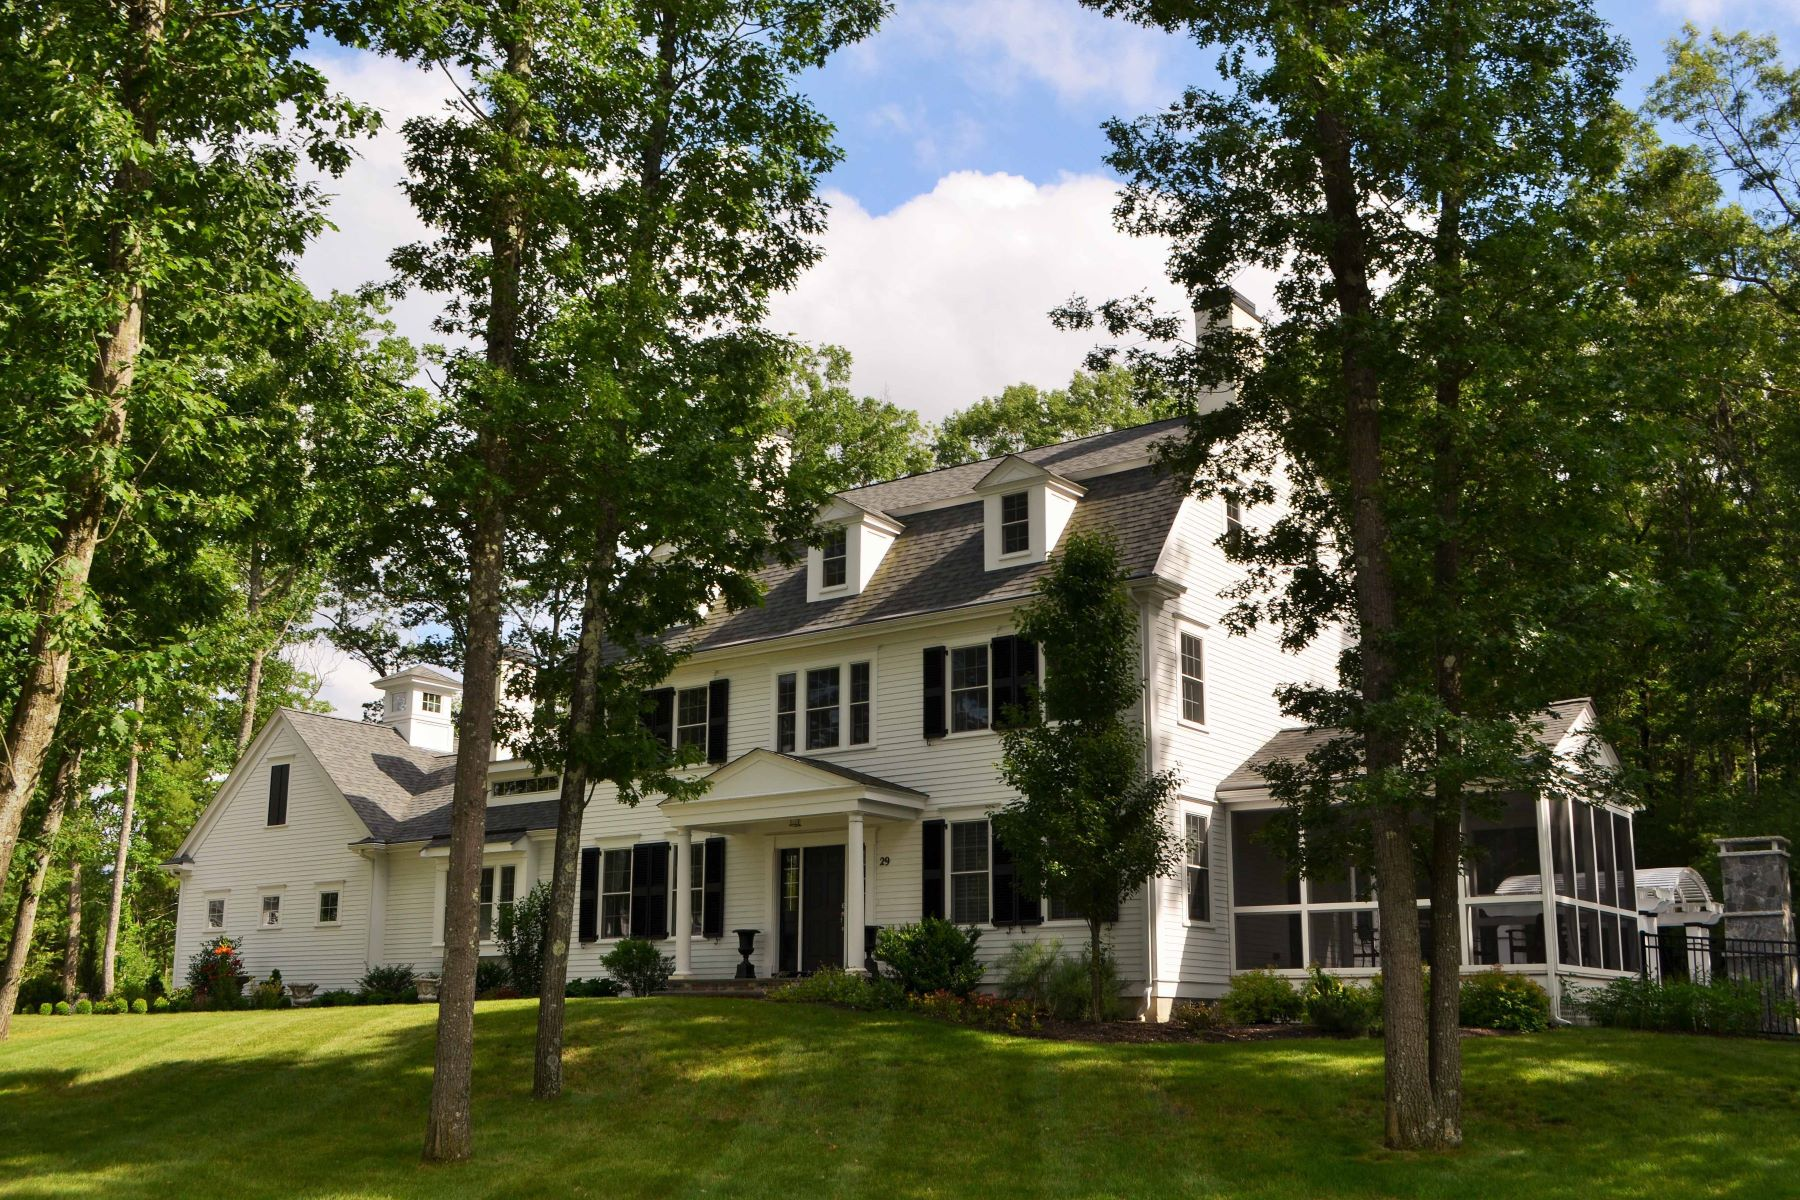 House for Sale at Cosentino 29 Mill Pond Bolton, Massachusetts 01740 United States